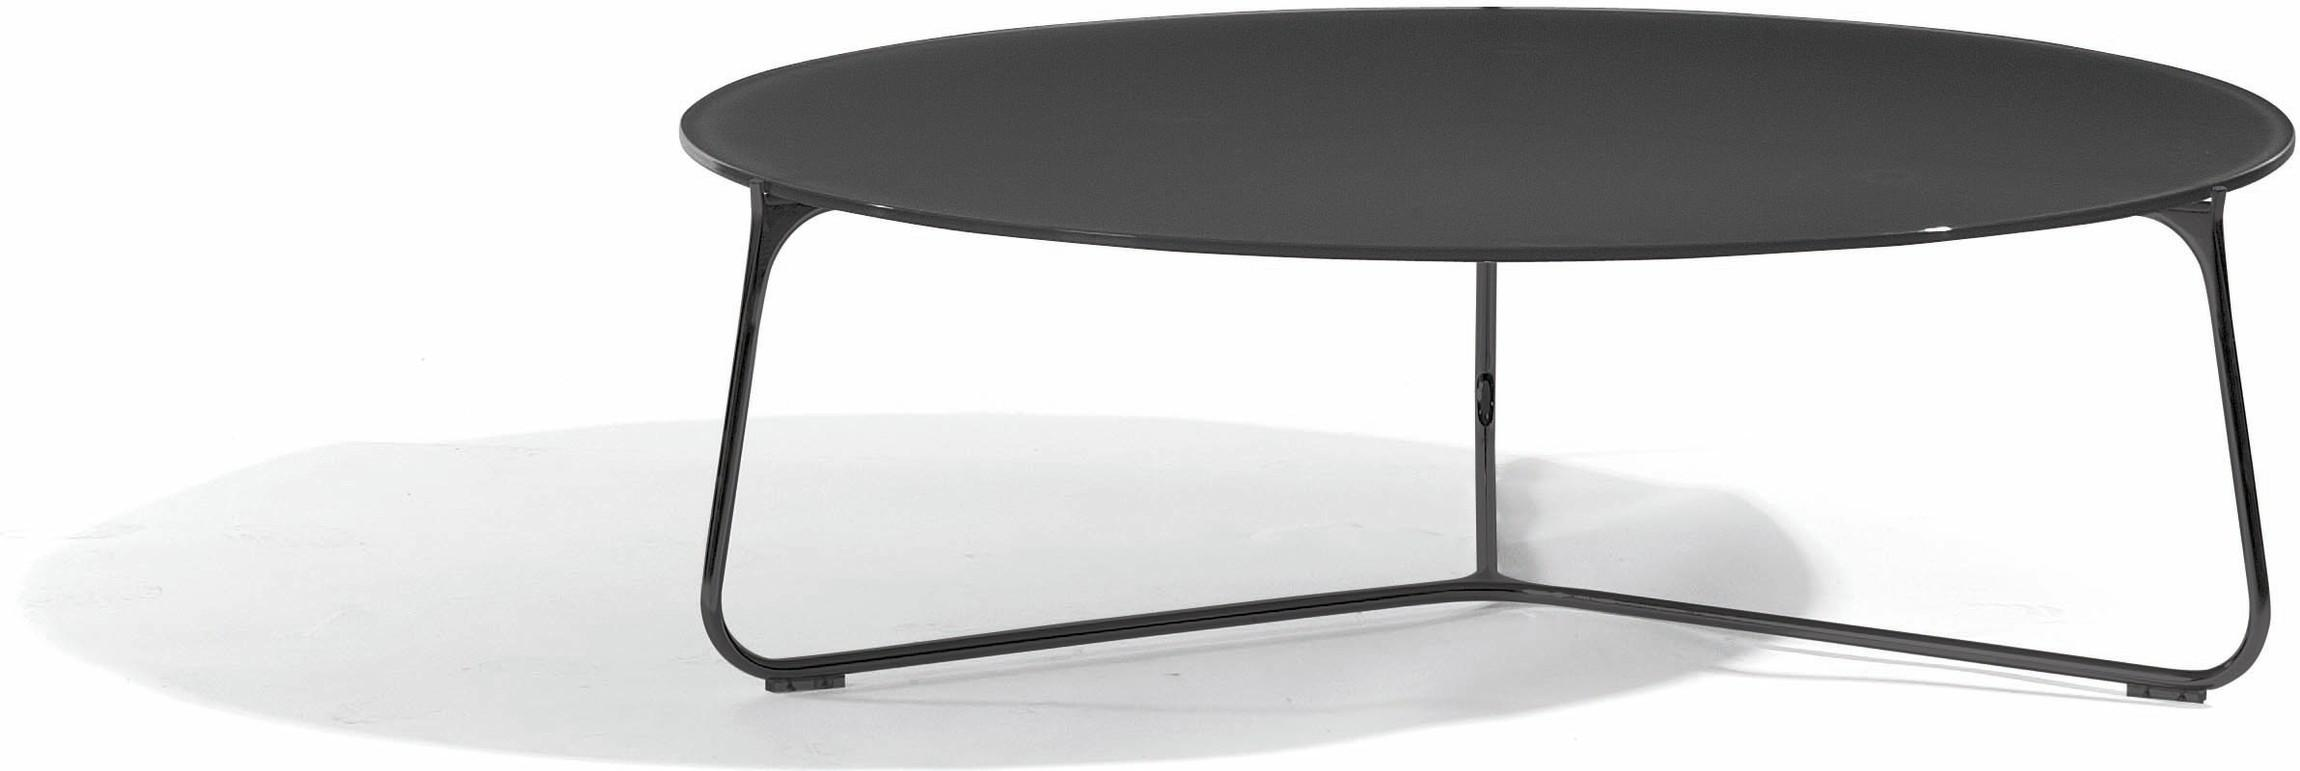 Mood coffee table - lava - glass black - 100